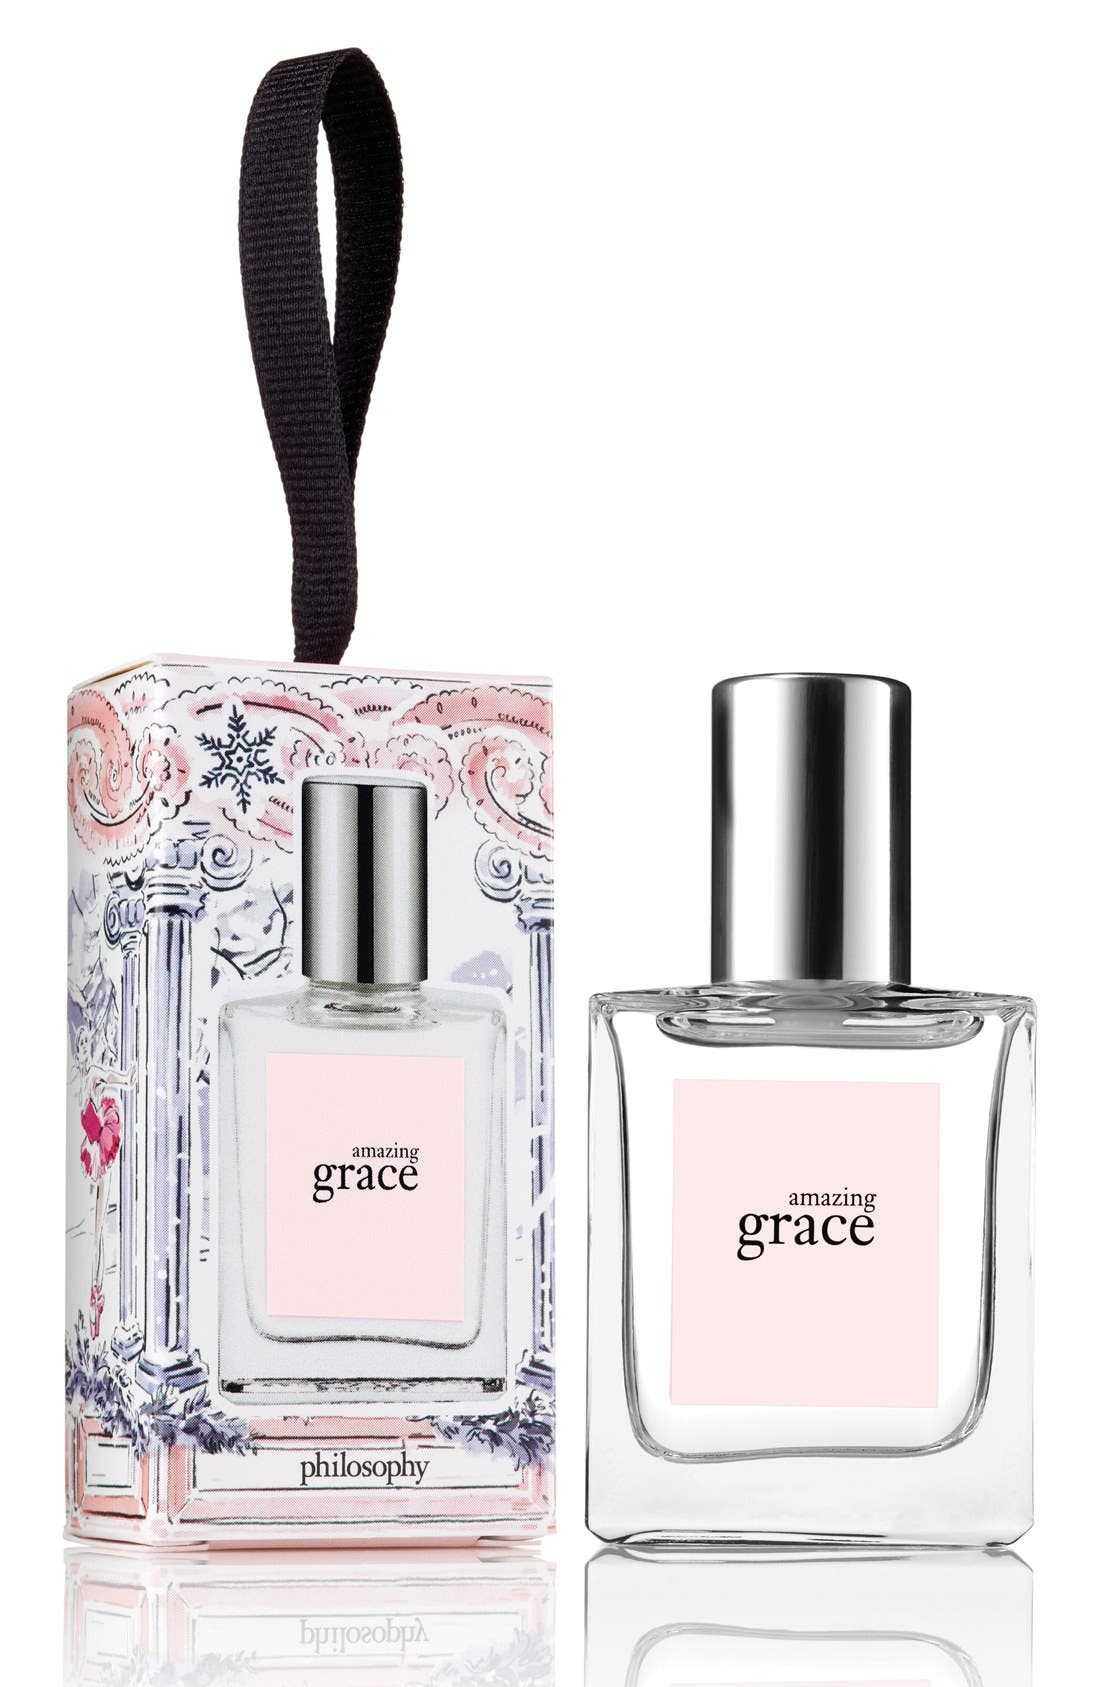 philosophy 'amazing grace' eau de toilette ornament (Limited Edition)